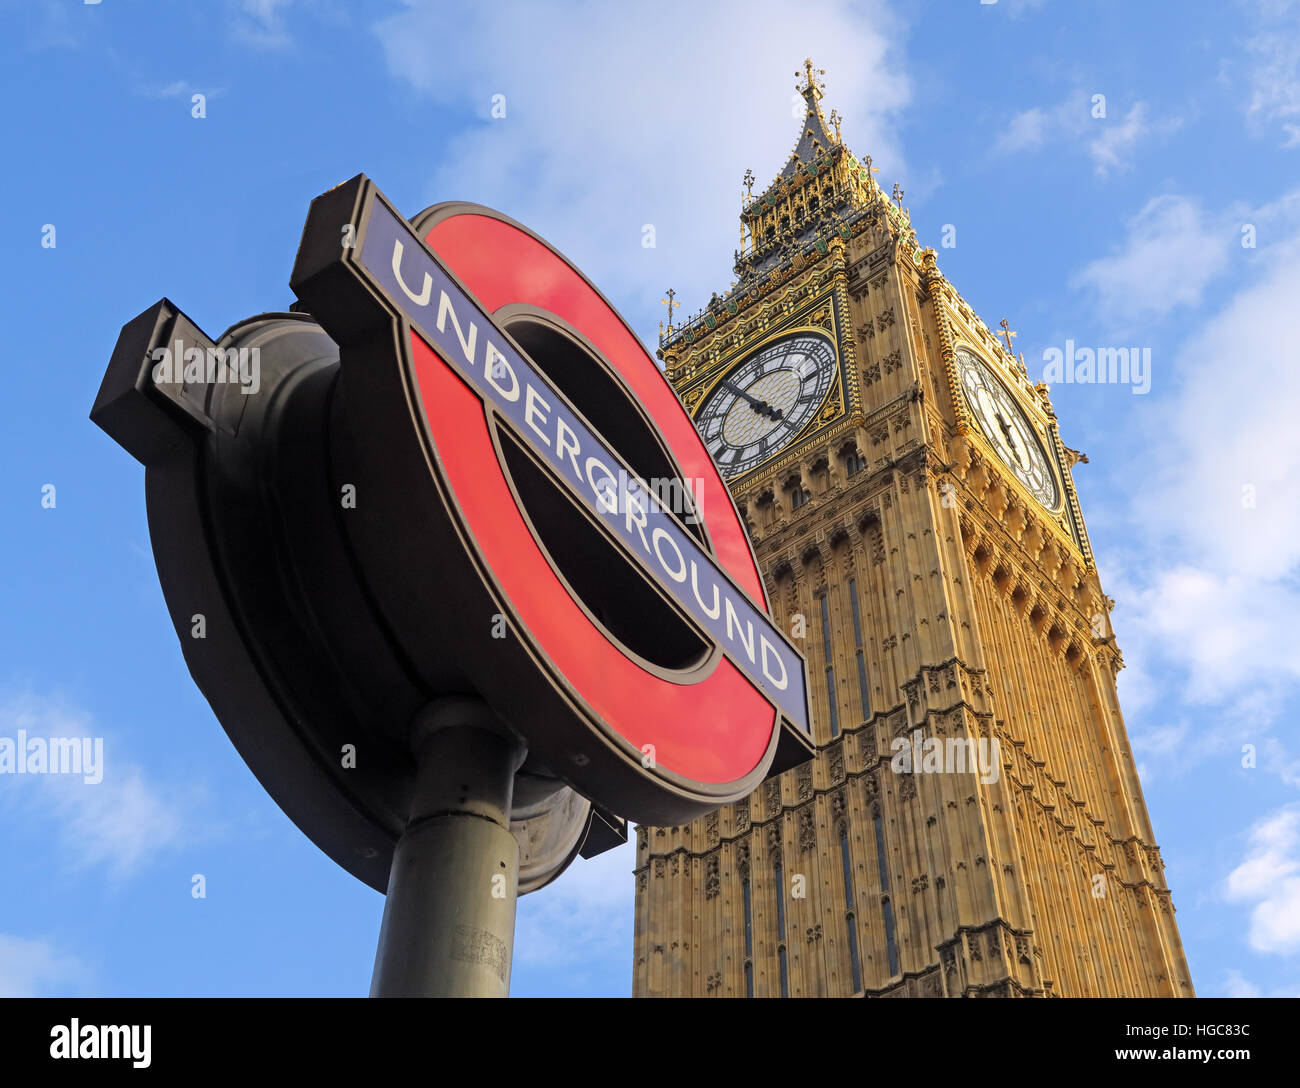 Westminster, icons of London, The Underground and Houses of parliament, England,UK - Stock Image